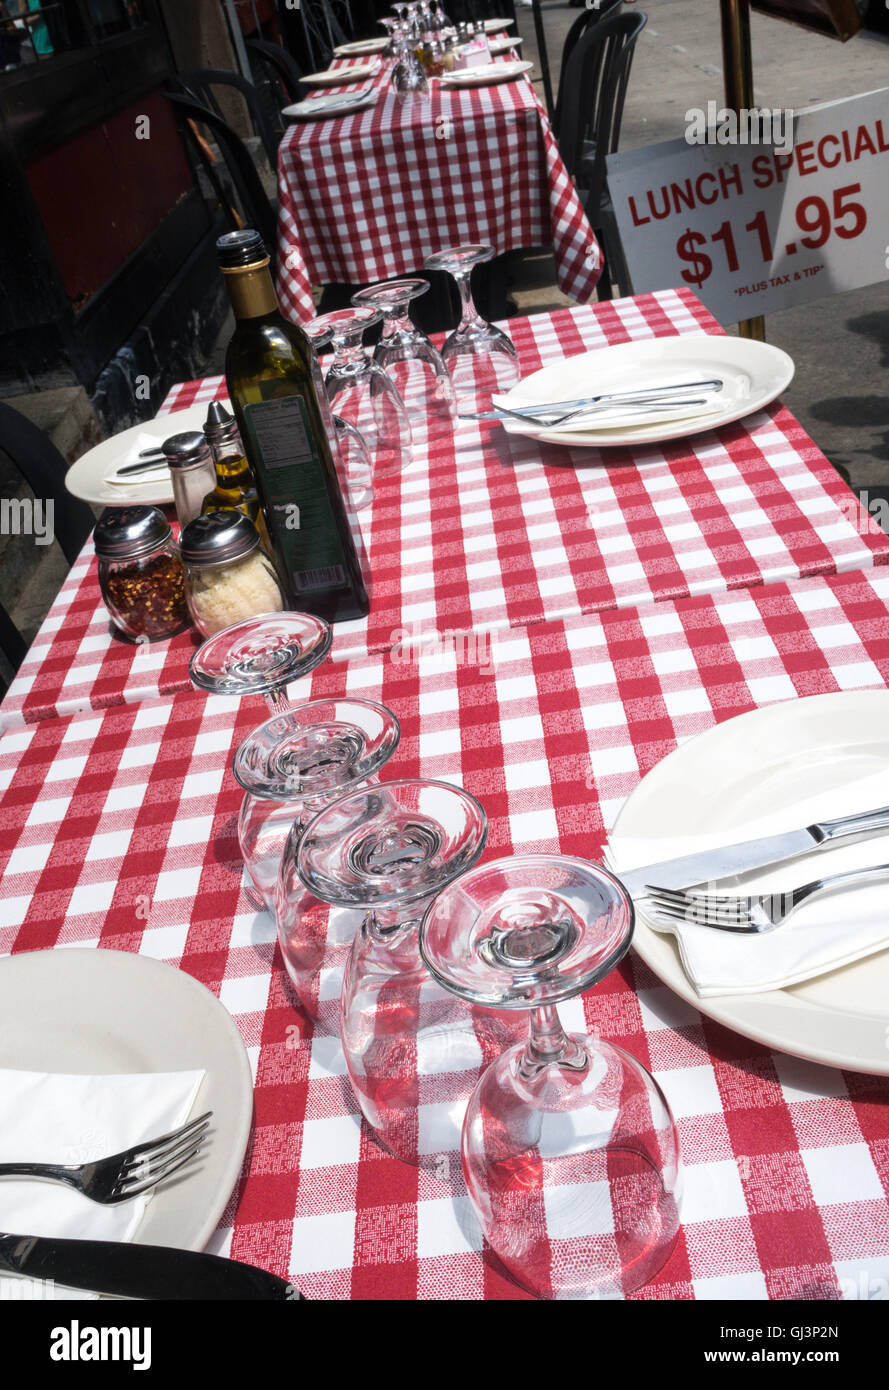 Outdoor Restaurant Dining Tables And Place Settings With Checkered  Tablecloths, , Little Italy, NYC, USA